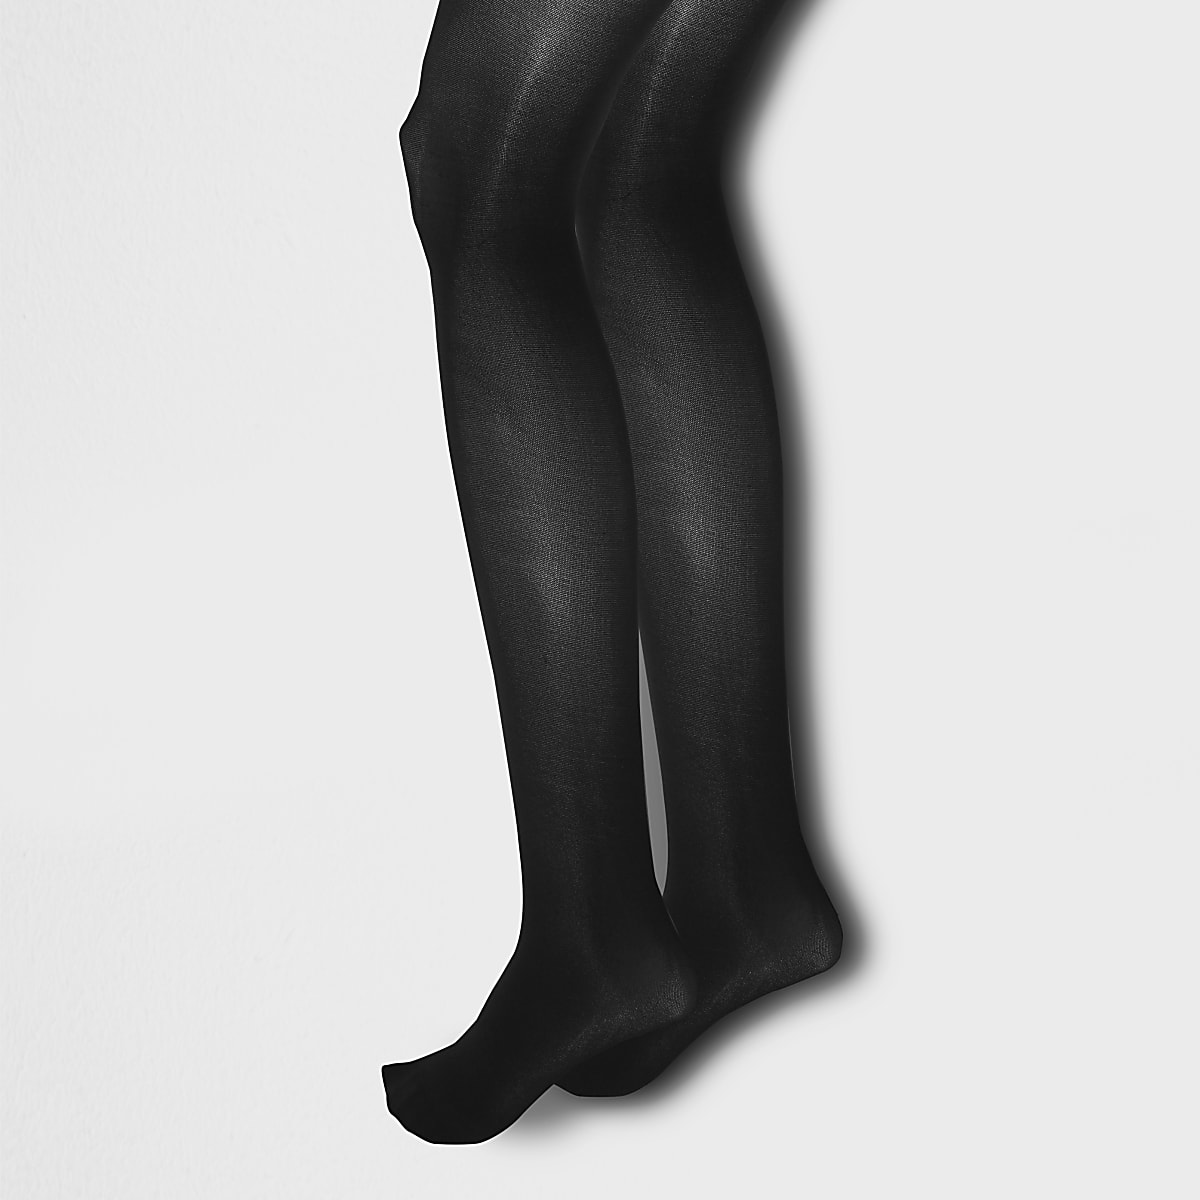 Black 40 denier tights multipack